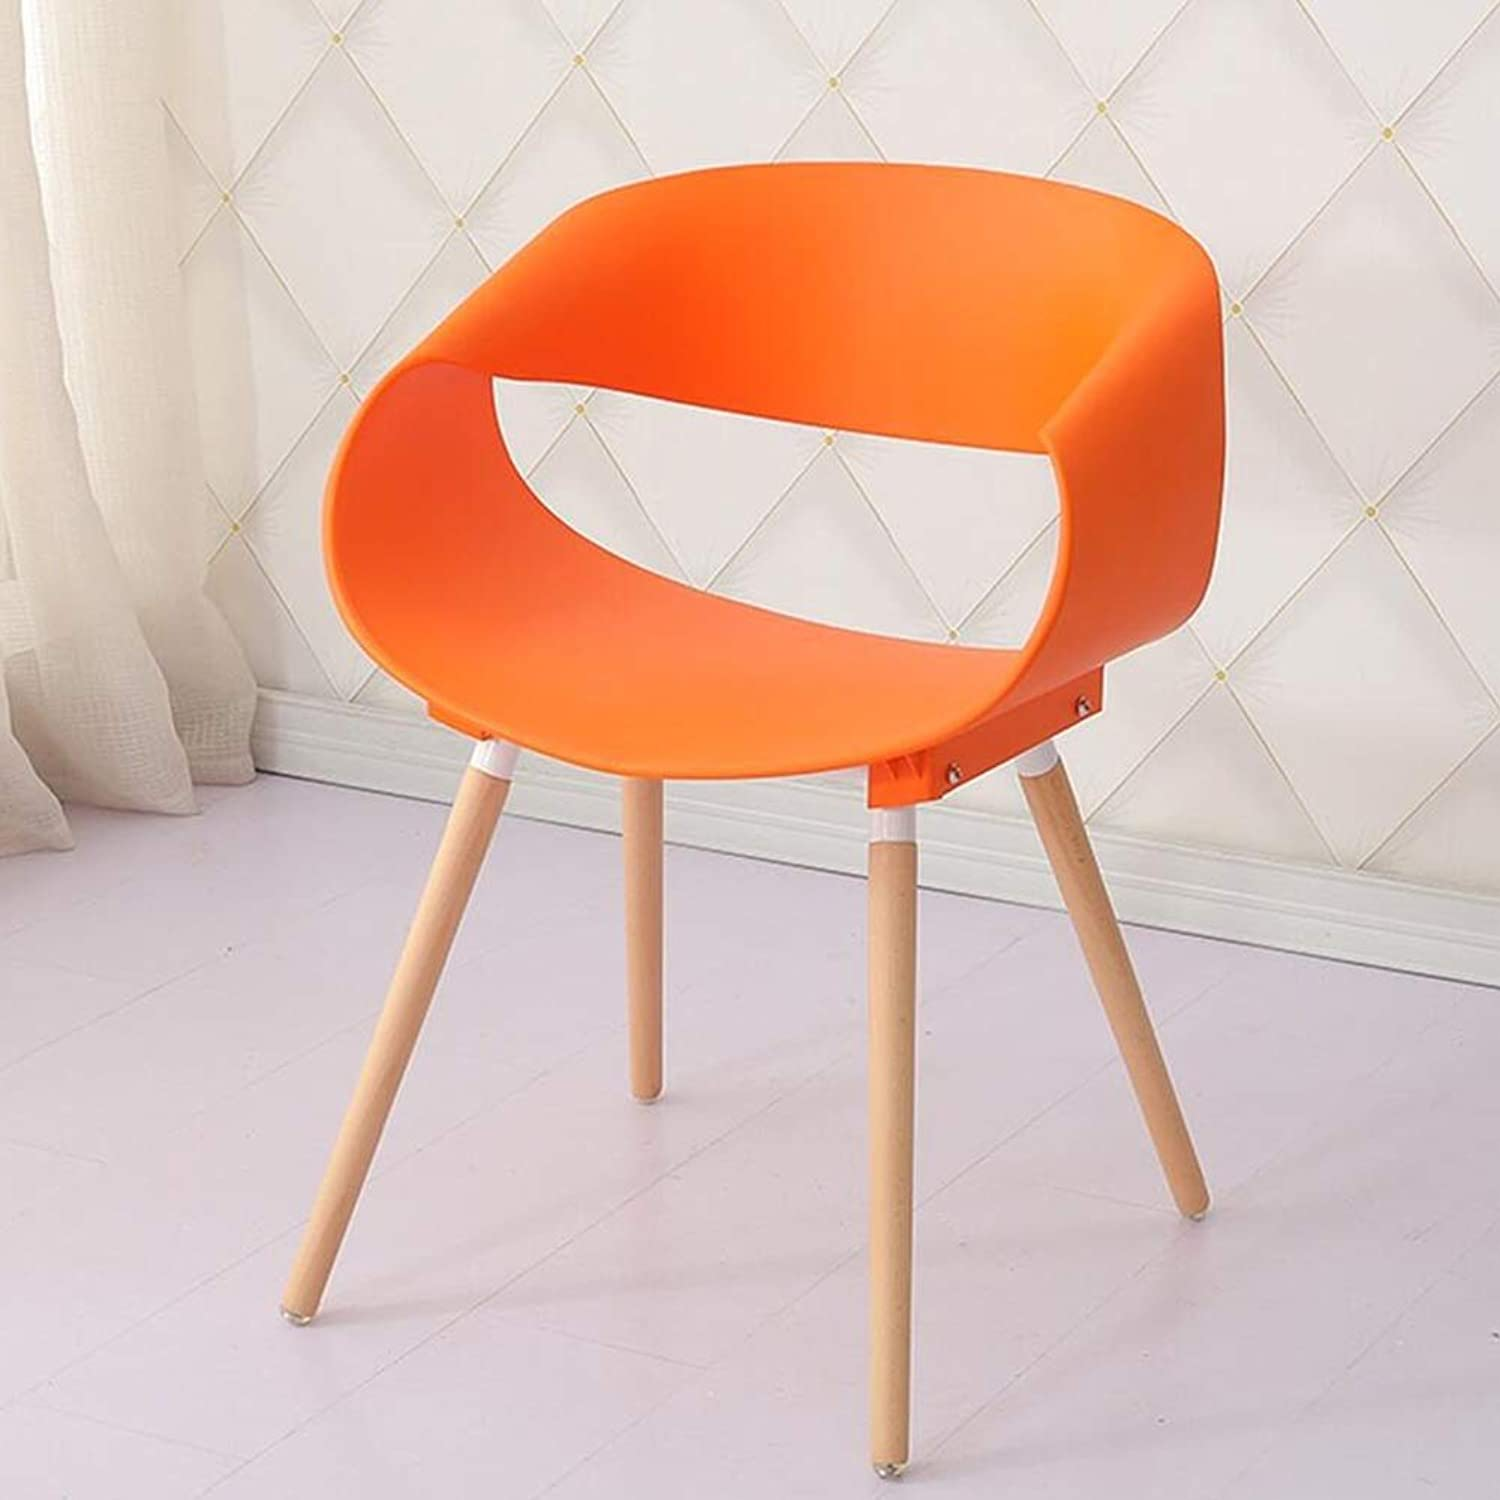 Chair Dining Chairs Seat Chair Plastic Negotiate Casual Entertain Armrest Creativity Simple Curve FENPING (color   orange)